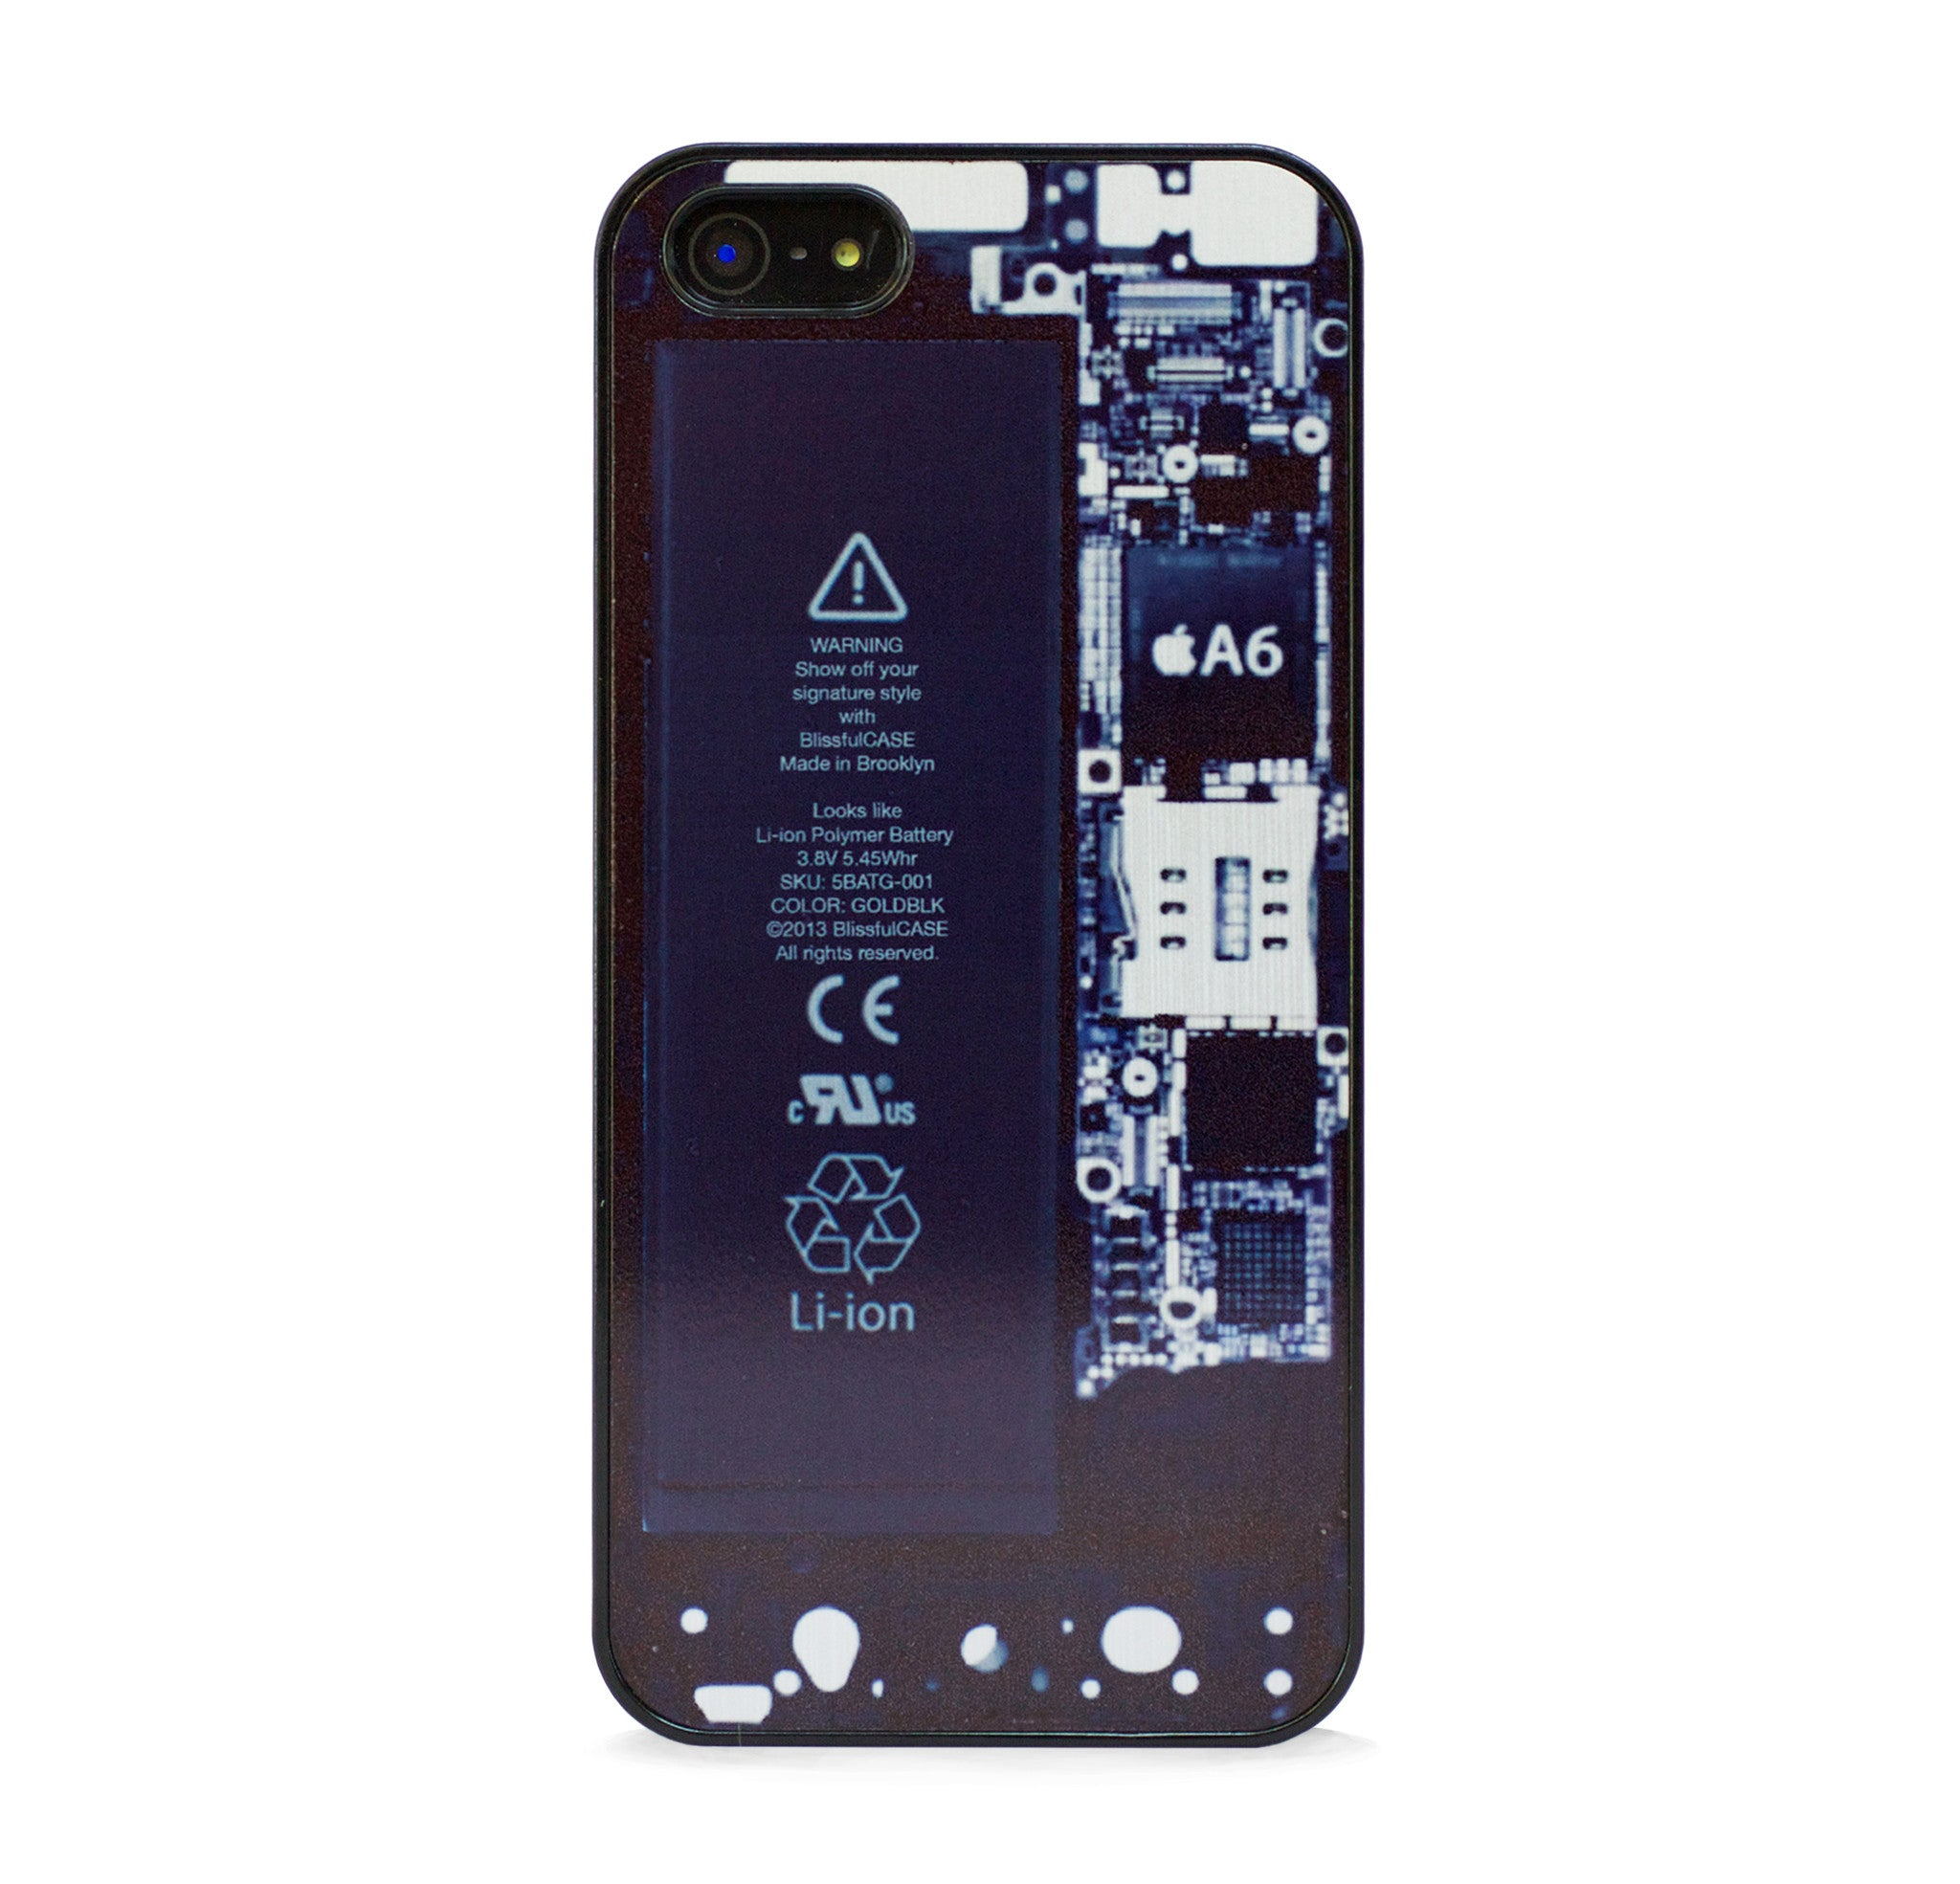 VISIBLE BACK PANEL IPHONE 5/5S CASE